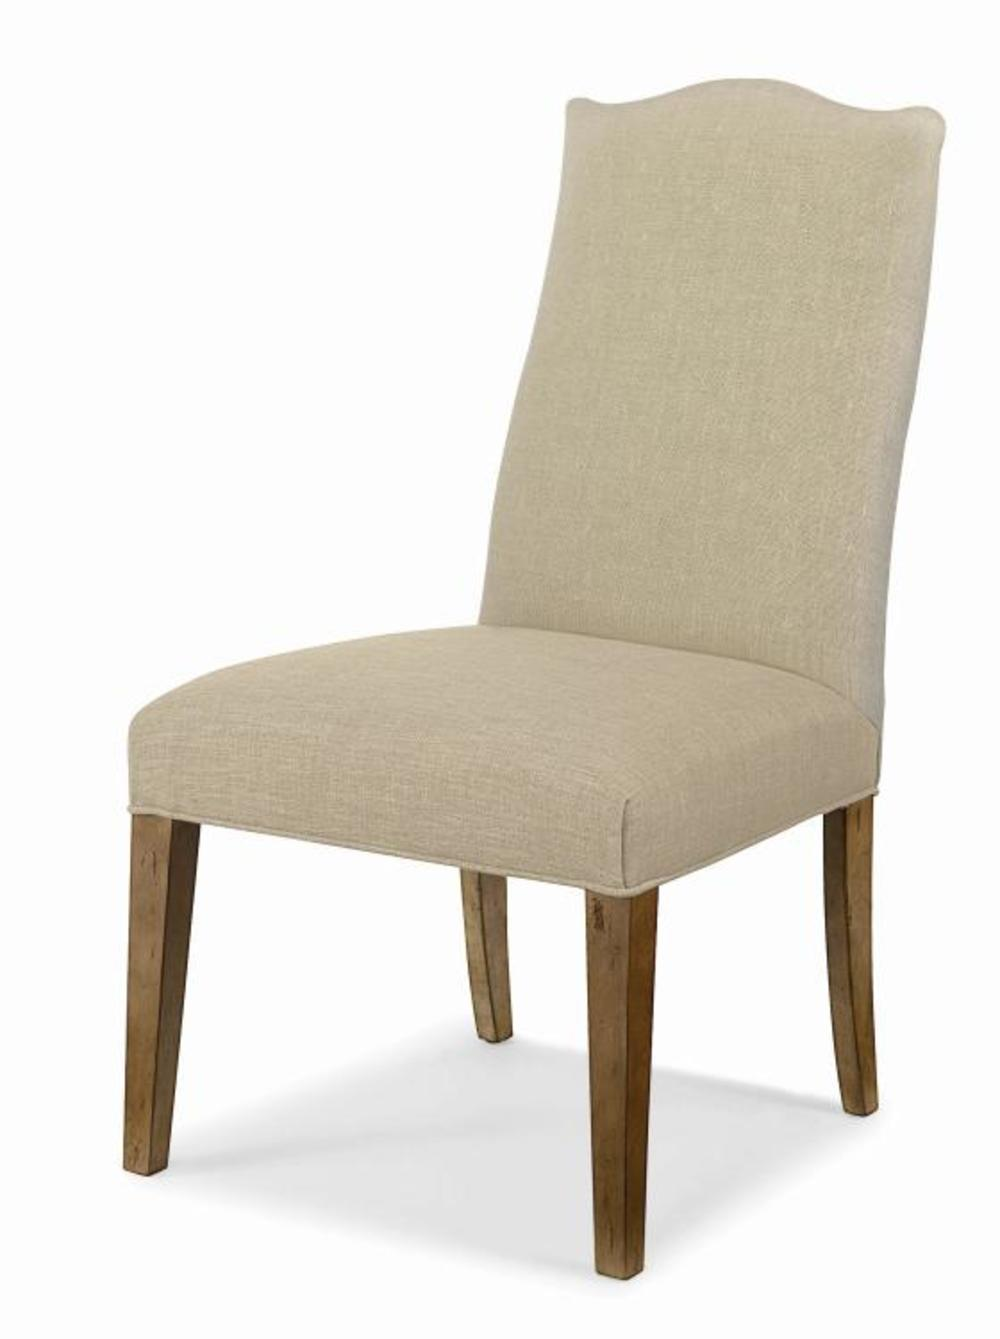 Century Furniture - Chandler Curved Back Exposed Wood w/ Camelback Top